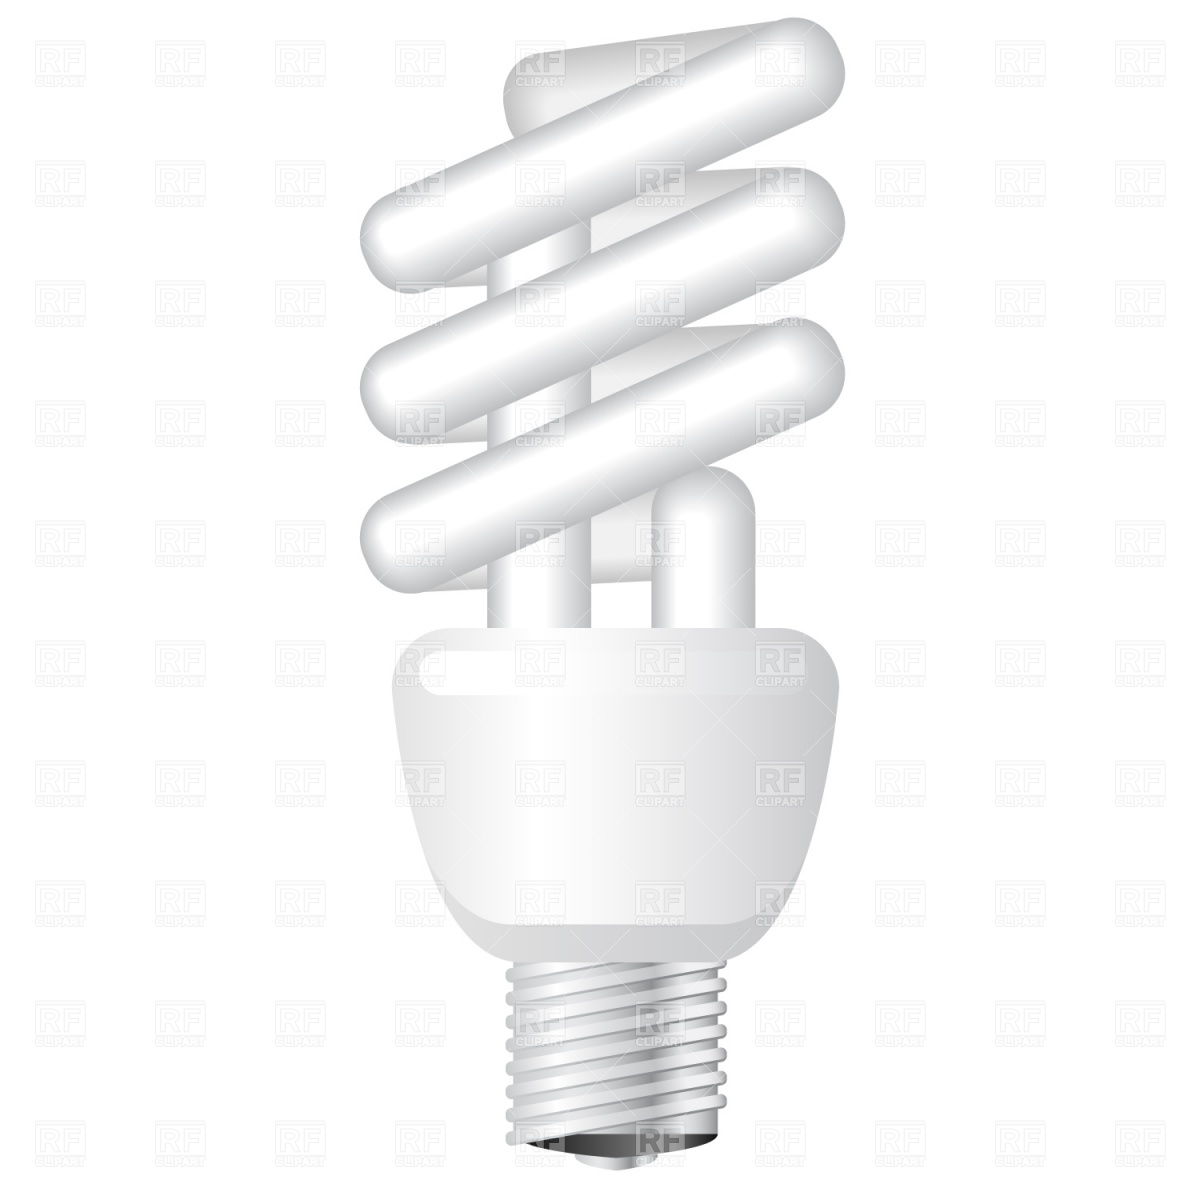 1200x1200 Energy Saving Light Bulb Vector Image Vector Artwork Of